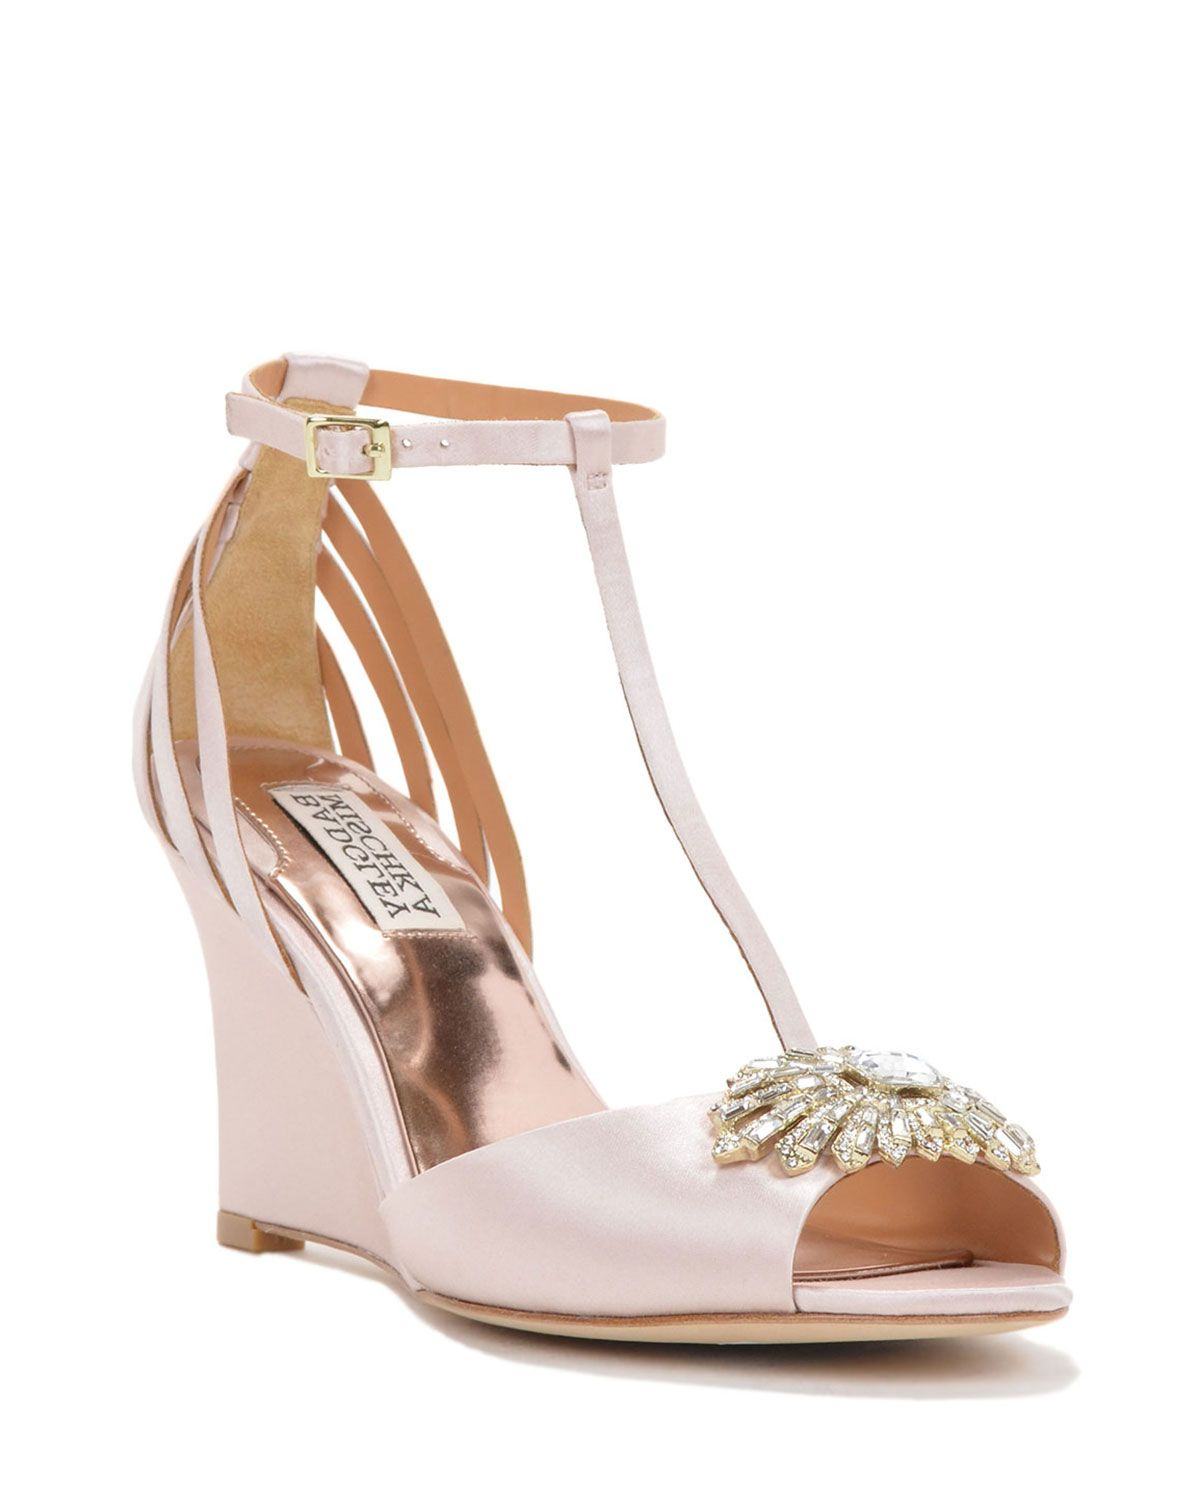 d2d437c2dc0 Milly T-Strap Wedge Evening Shoe by Badgley Mischka